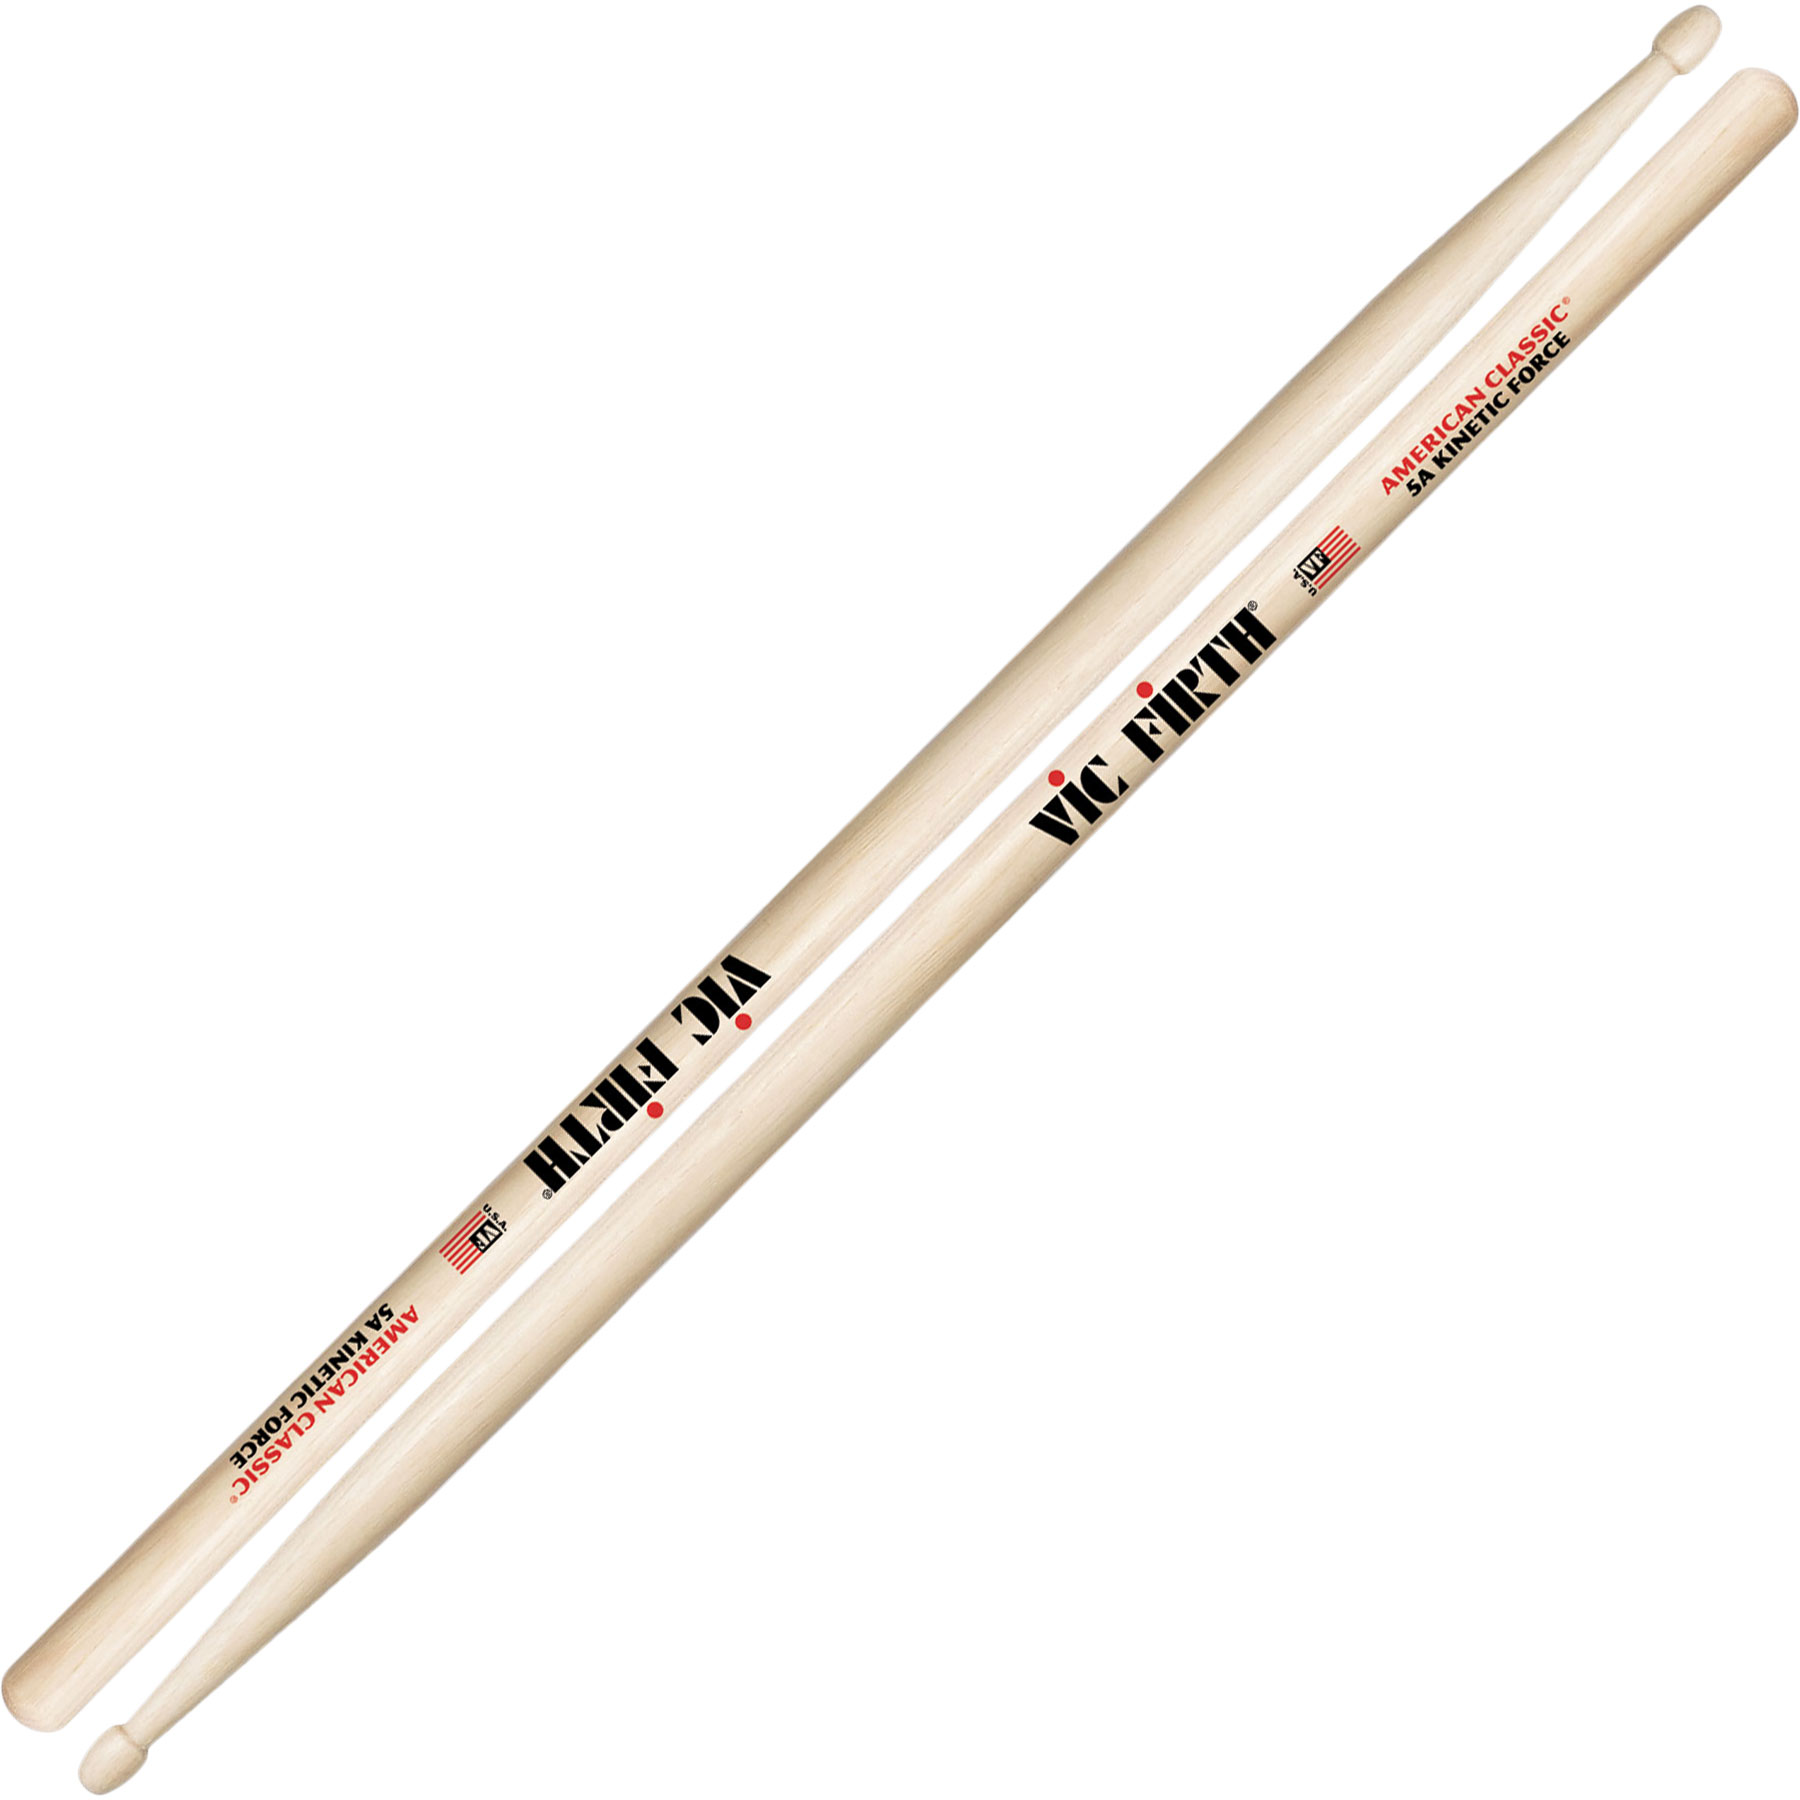 vic firth american classic kinetic force 5a drumsticks 5akf. Black Bedroom Furniture Sets. Home Design Ideas